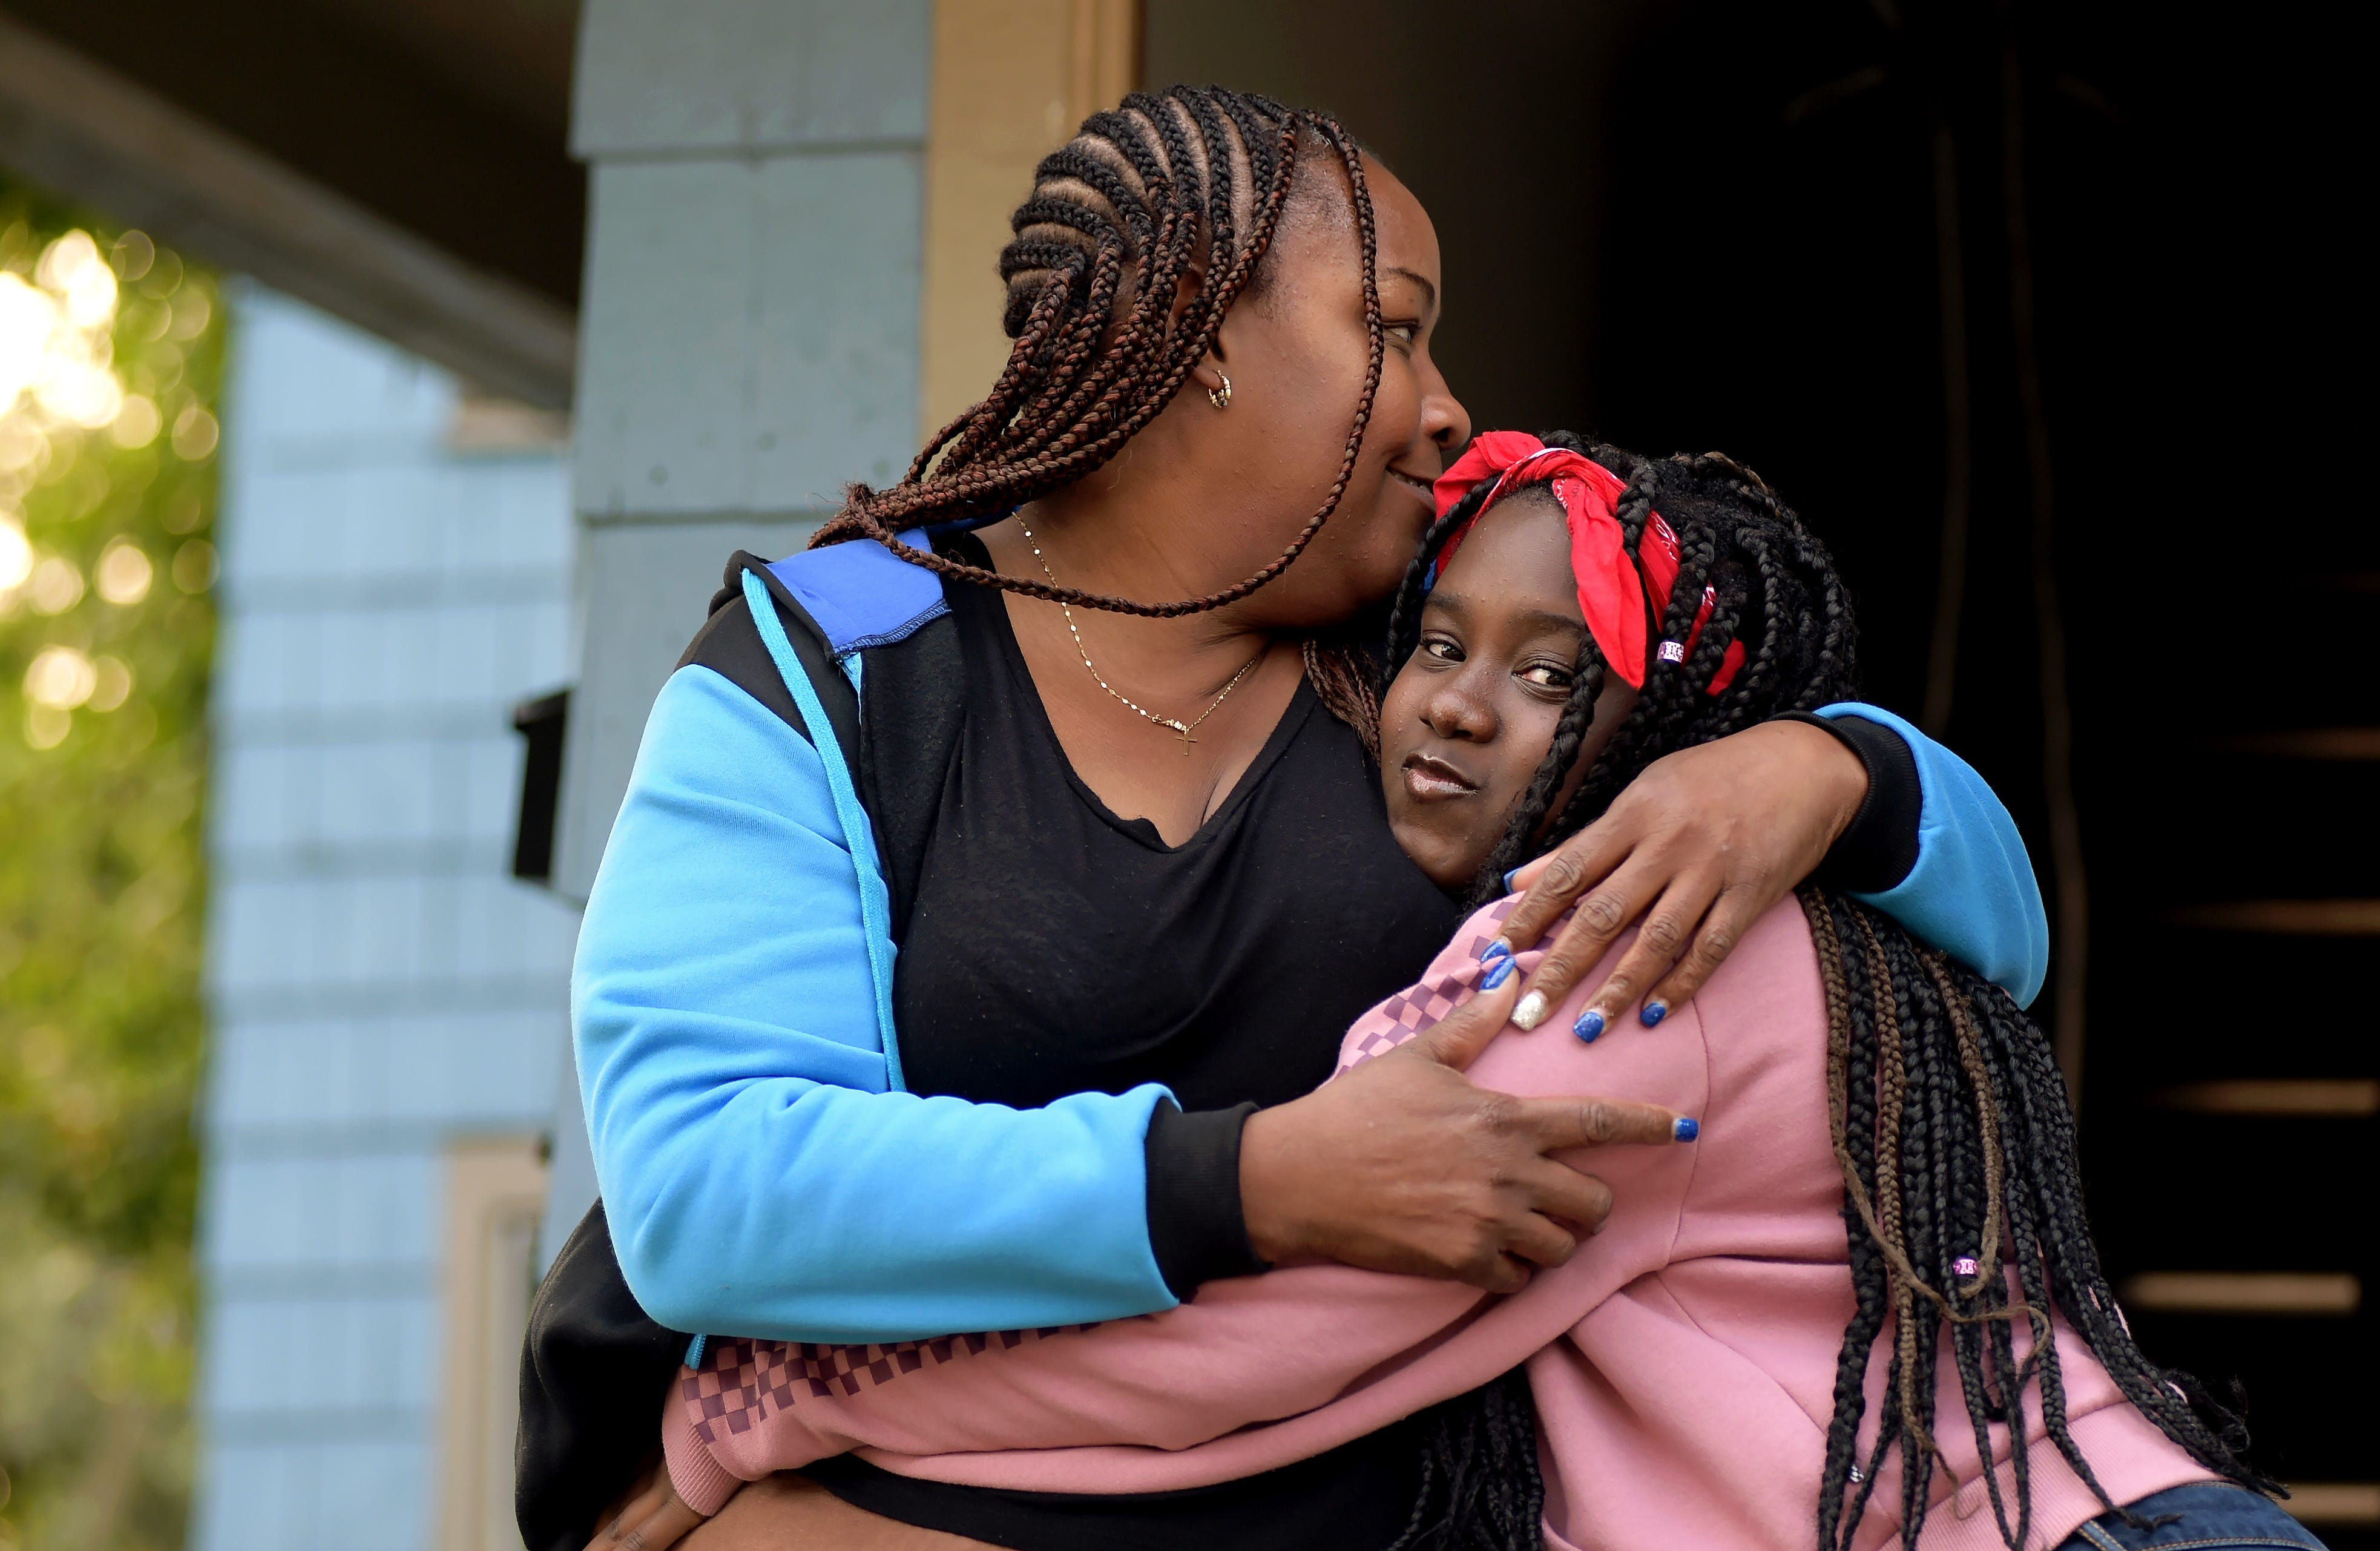 Davita Bateman with her daughter Raelin Powell, 12, in front of the family's Binghamton home. Bateman has opted for Raelin, an honor student at West Middle School who works well independently, to do the entire school year remotely. Tuesday, Sept. 15, 2020.